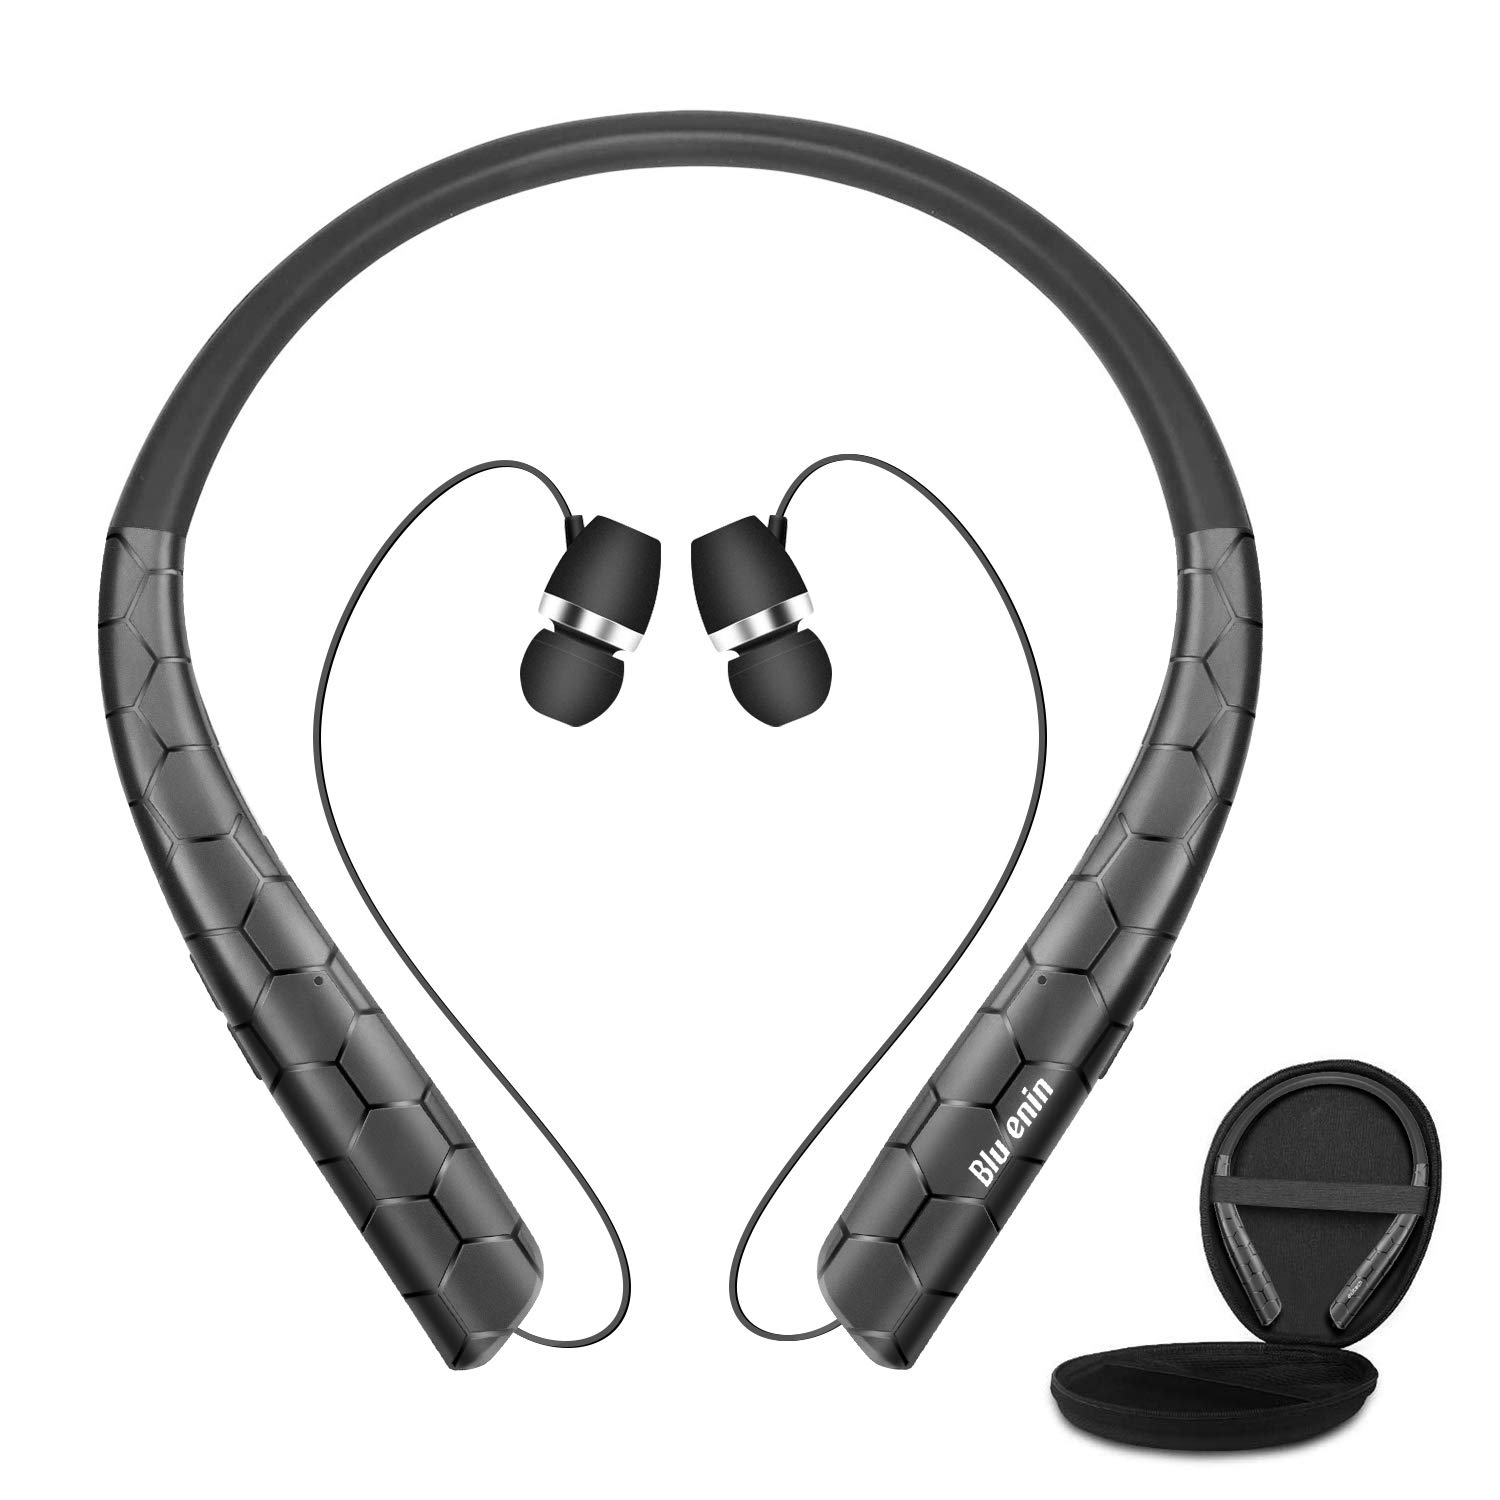 Bluenin Bluetooth Headphones With Carryi Buy Online In India At Desertcart